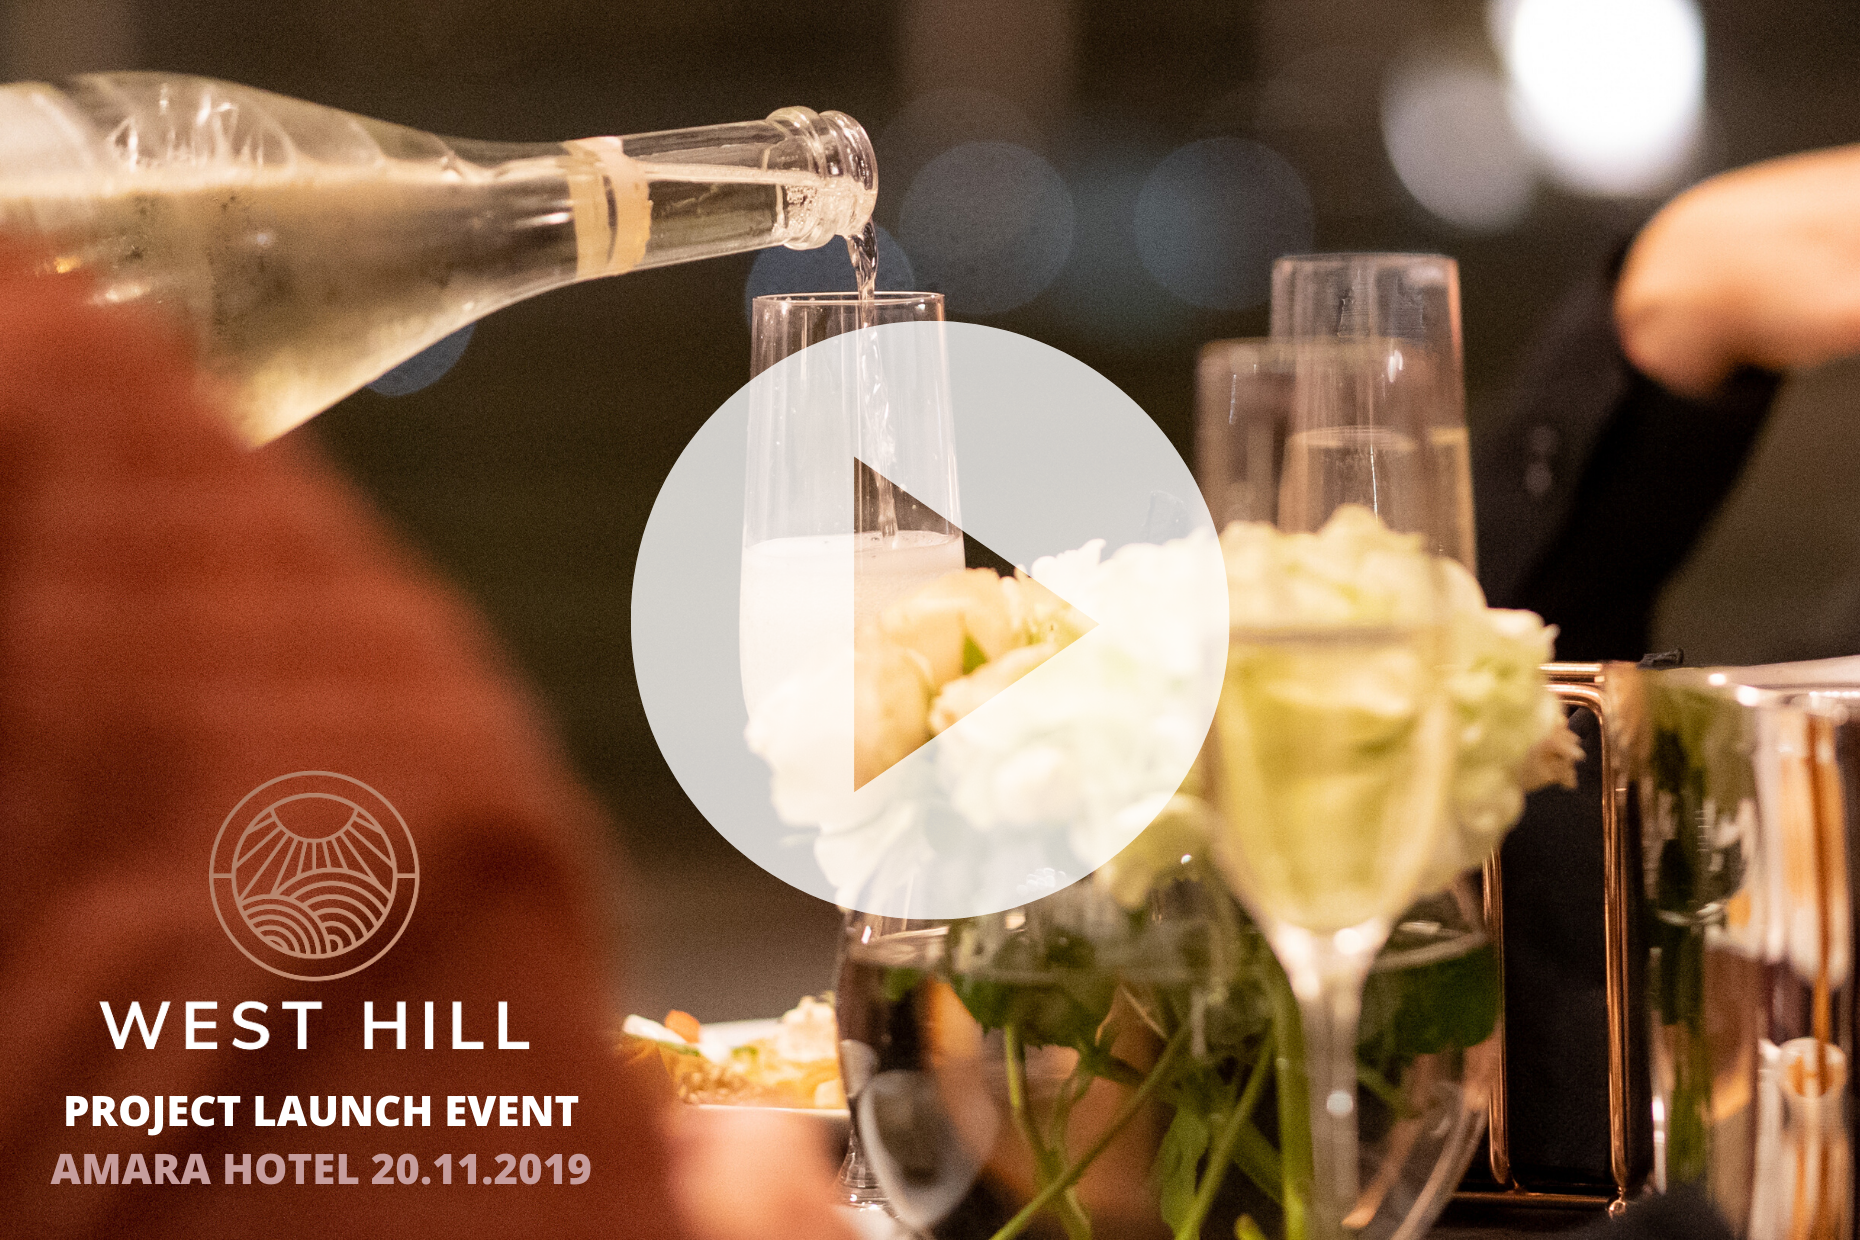 WEST HILL Project Launch Event video